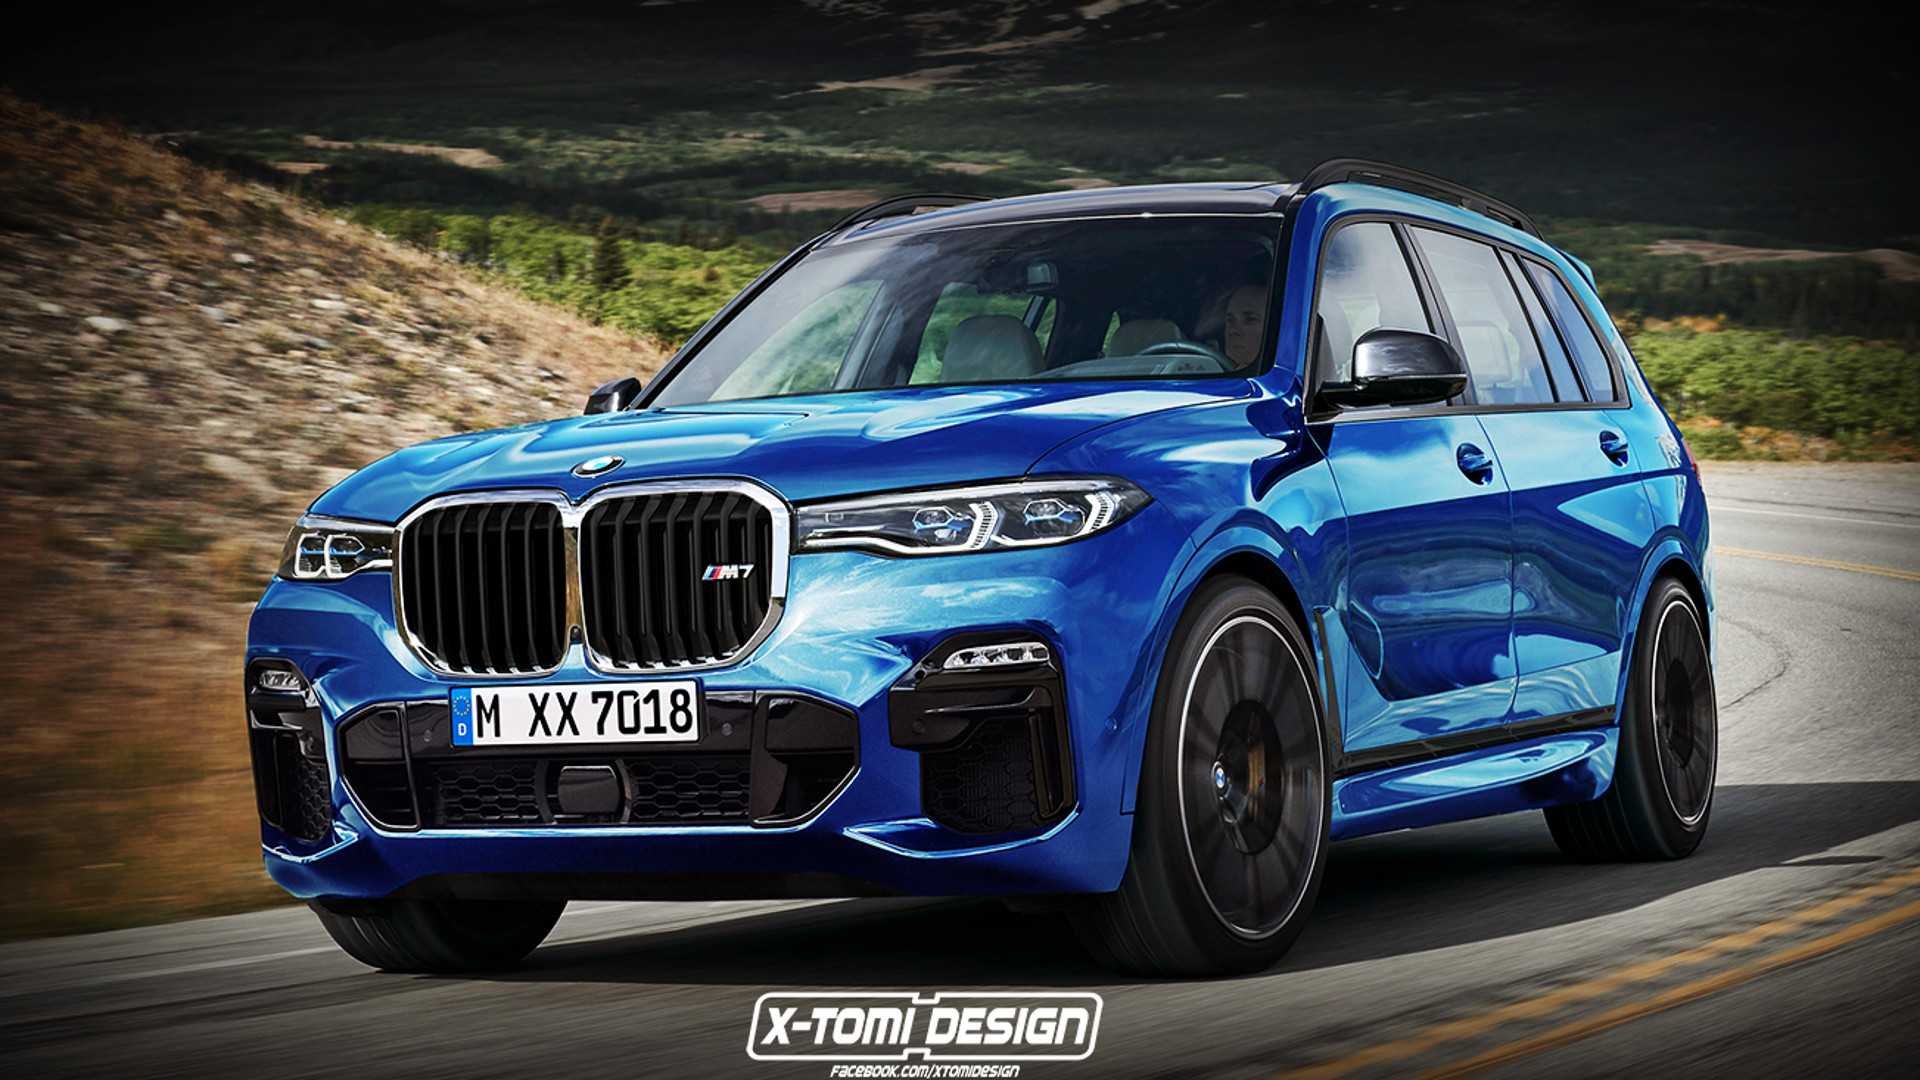 Bmw X7 M Imagined As Brand S Most Powerful And Potent Suv Ever